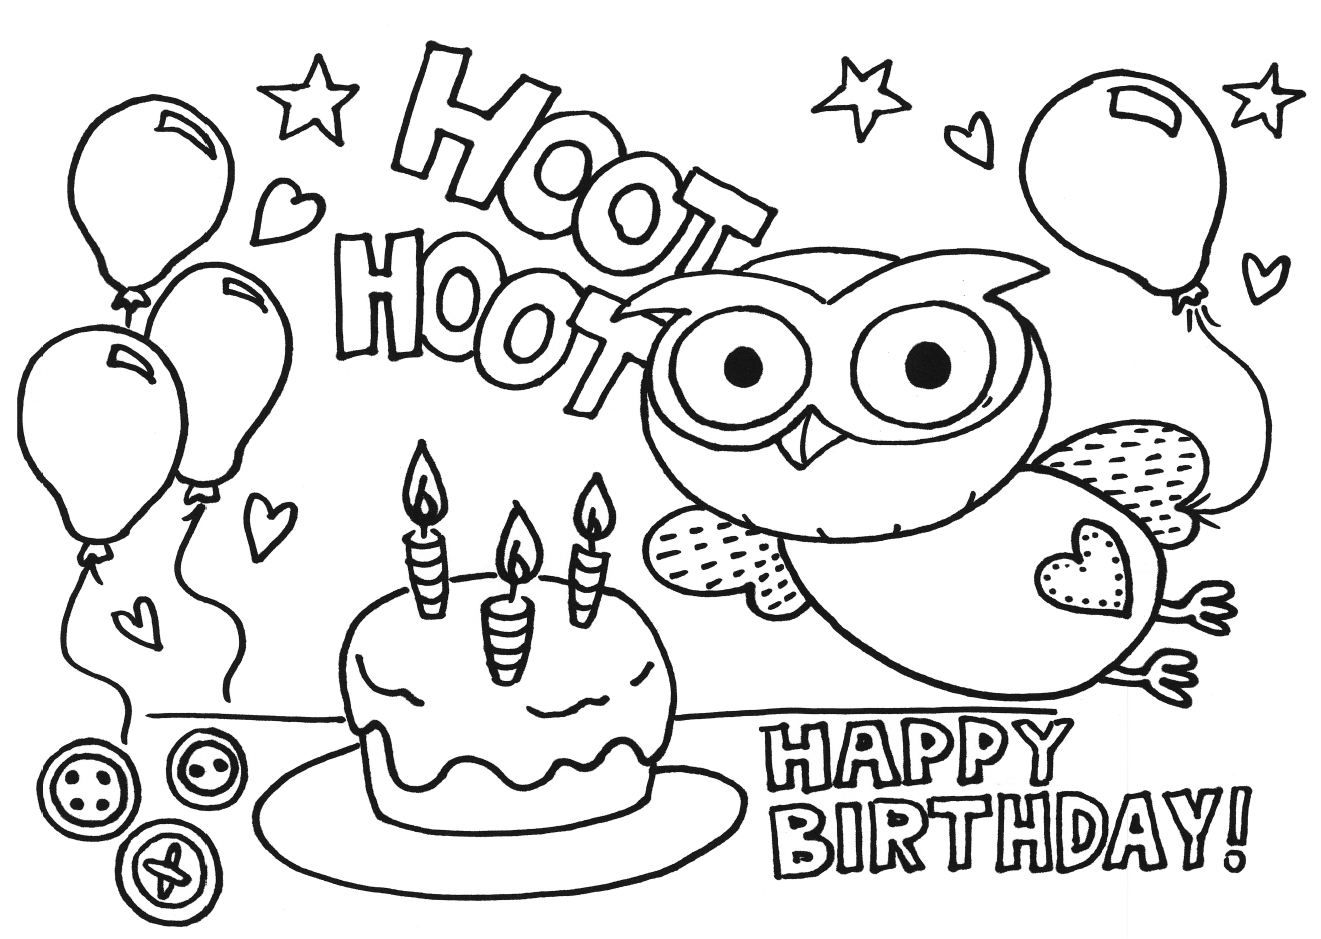 Coloring Pages Coloring Page Birthday Card birthday card coloring page az pages printable cards for nana coloring